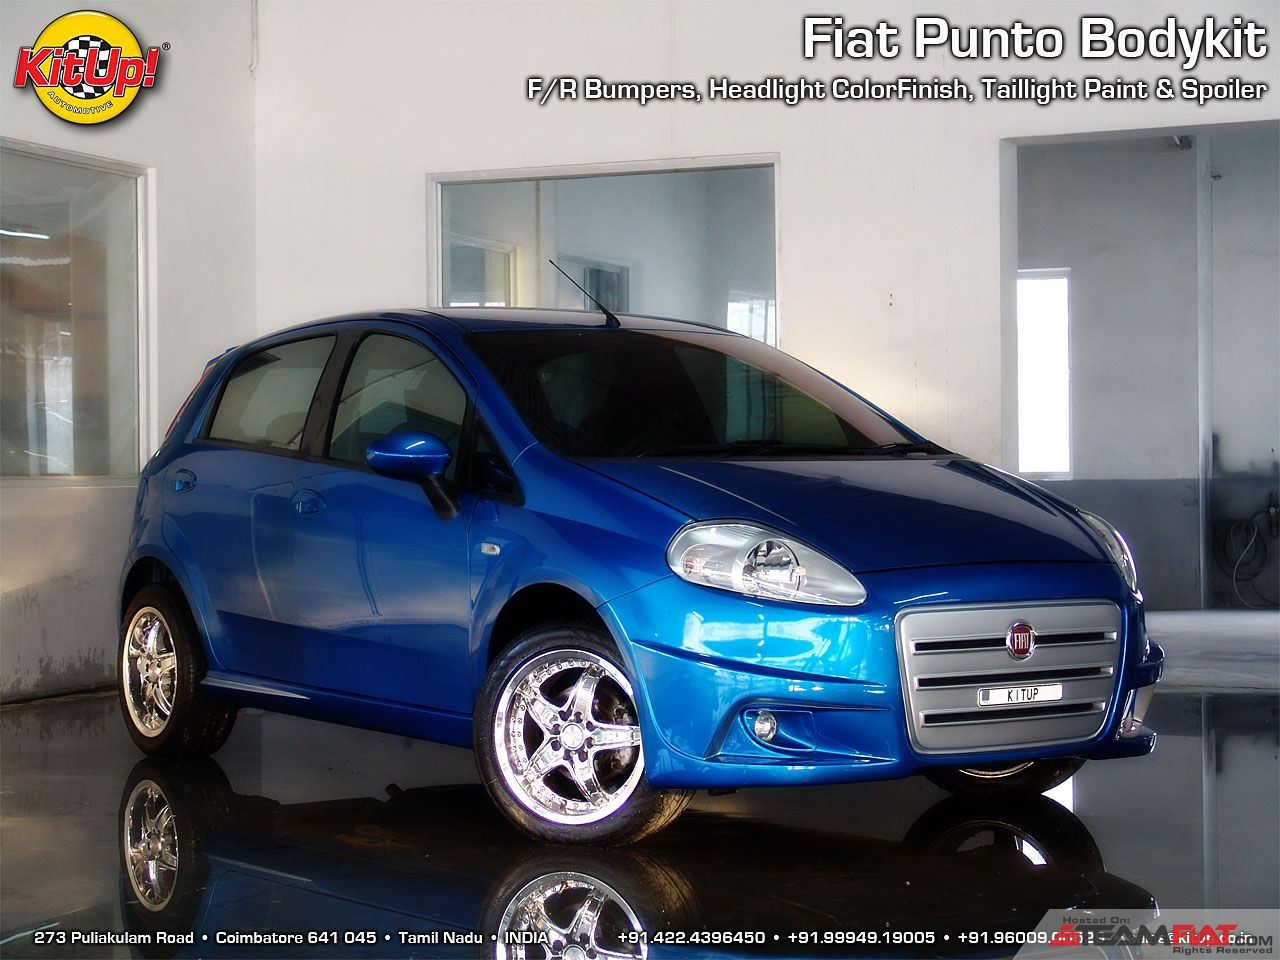 Punto-Bodykit1-1of8.jpg